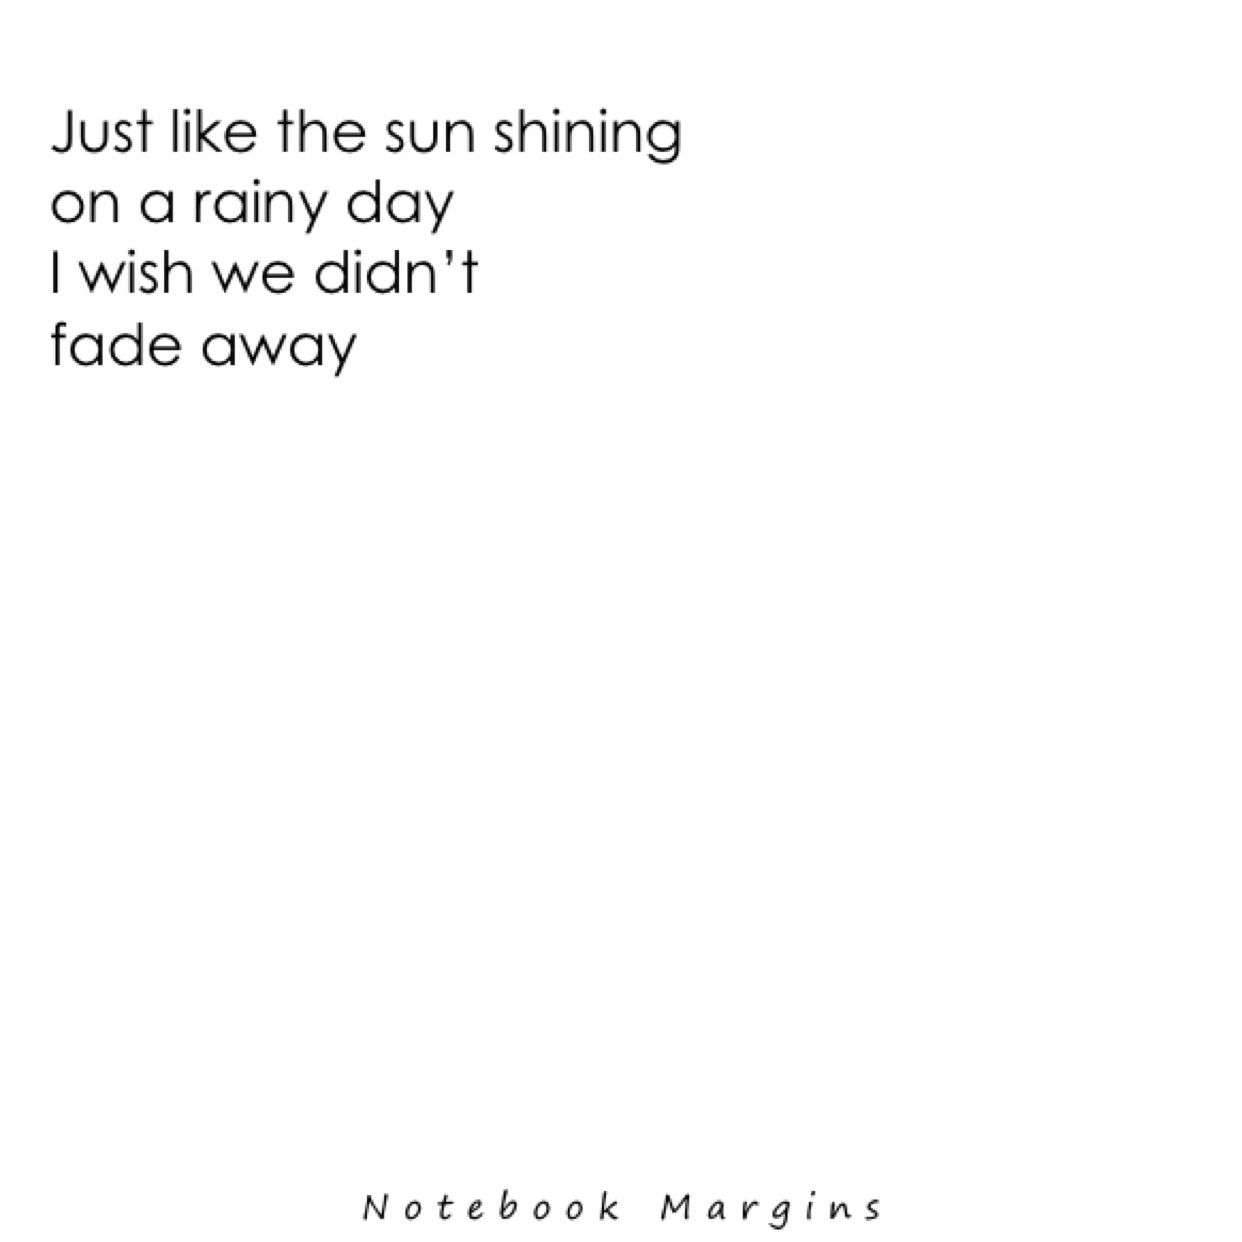 #Thoughts #Ideas #Poem #Poetry #Writing #RainyDay #MissYou #Longing